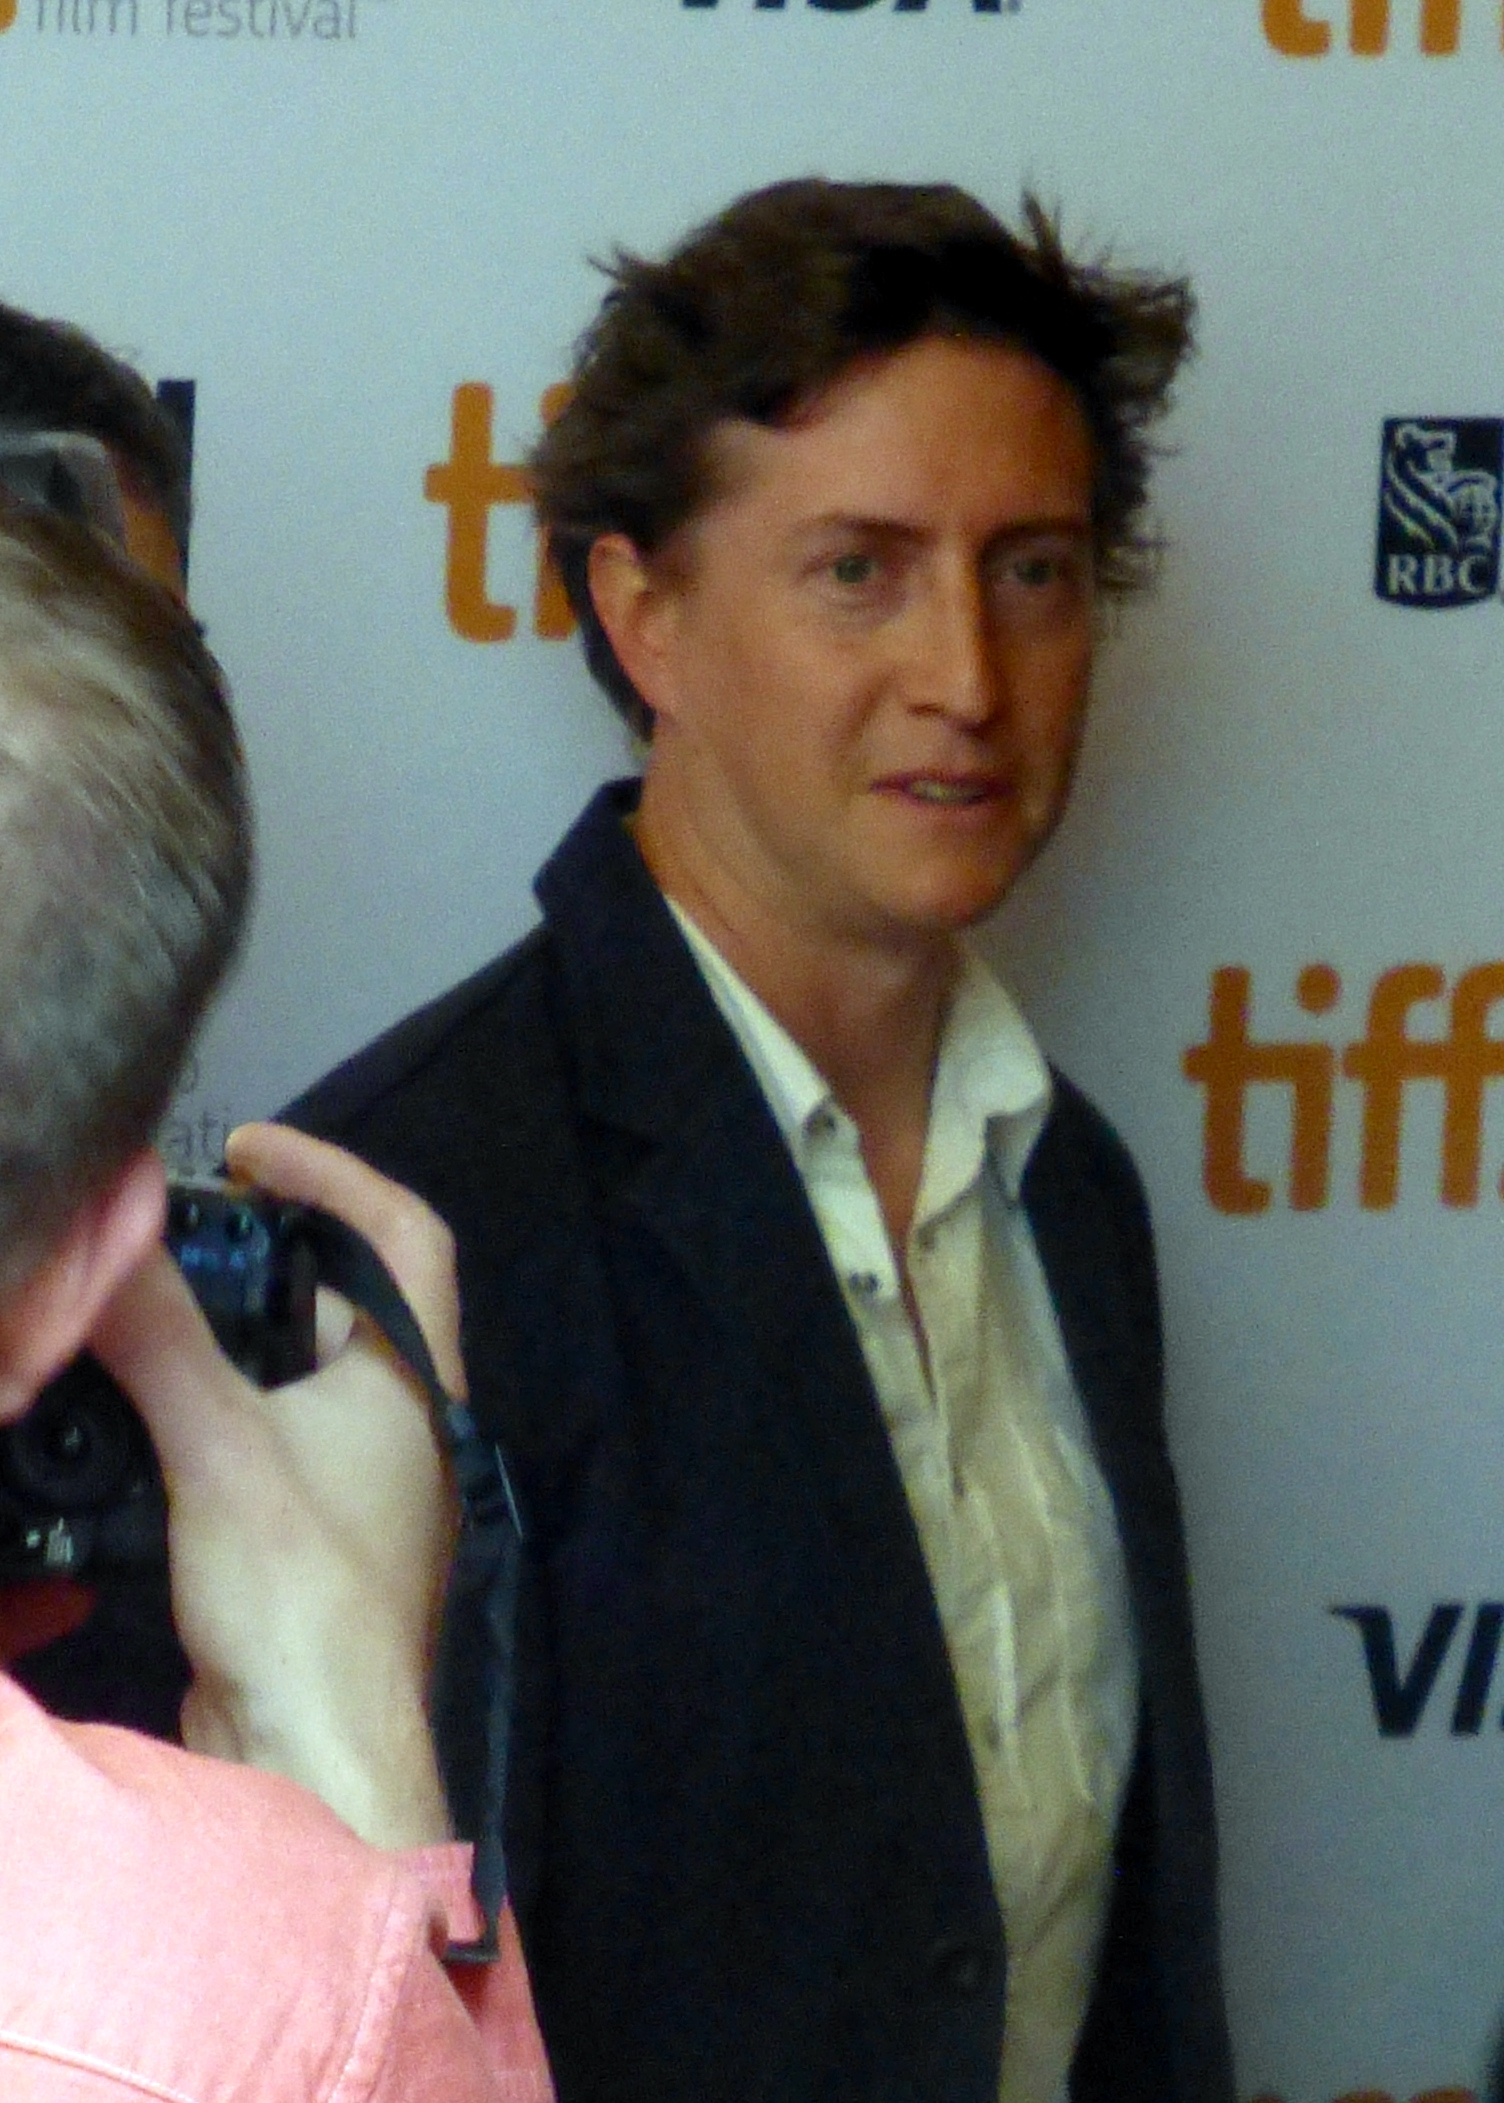 Depiction of David Gordon Green